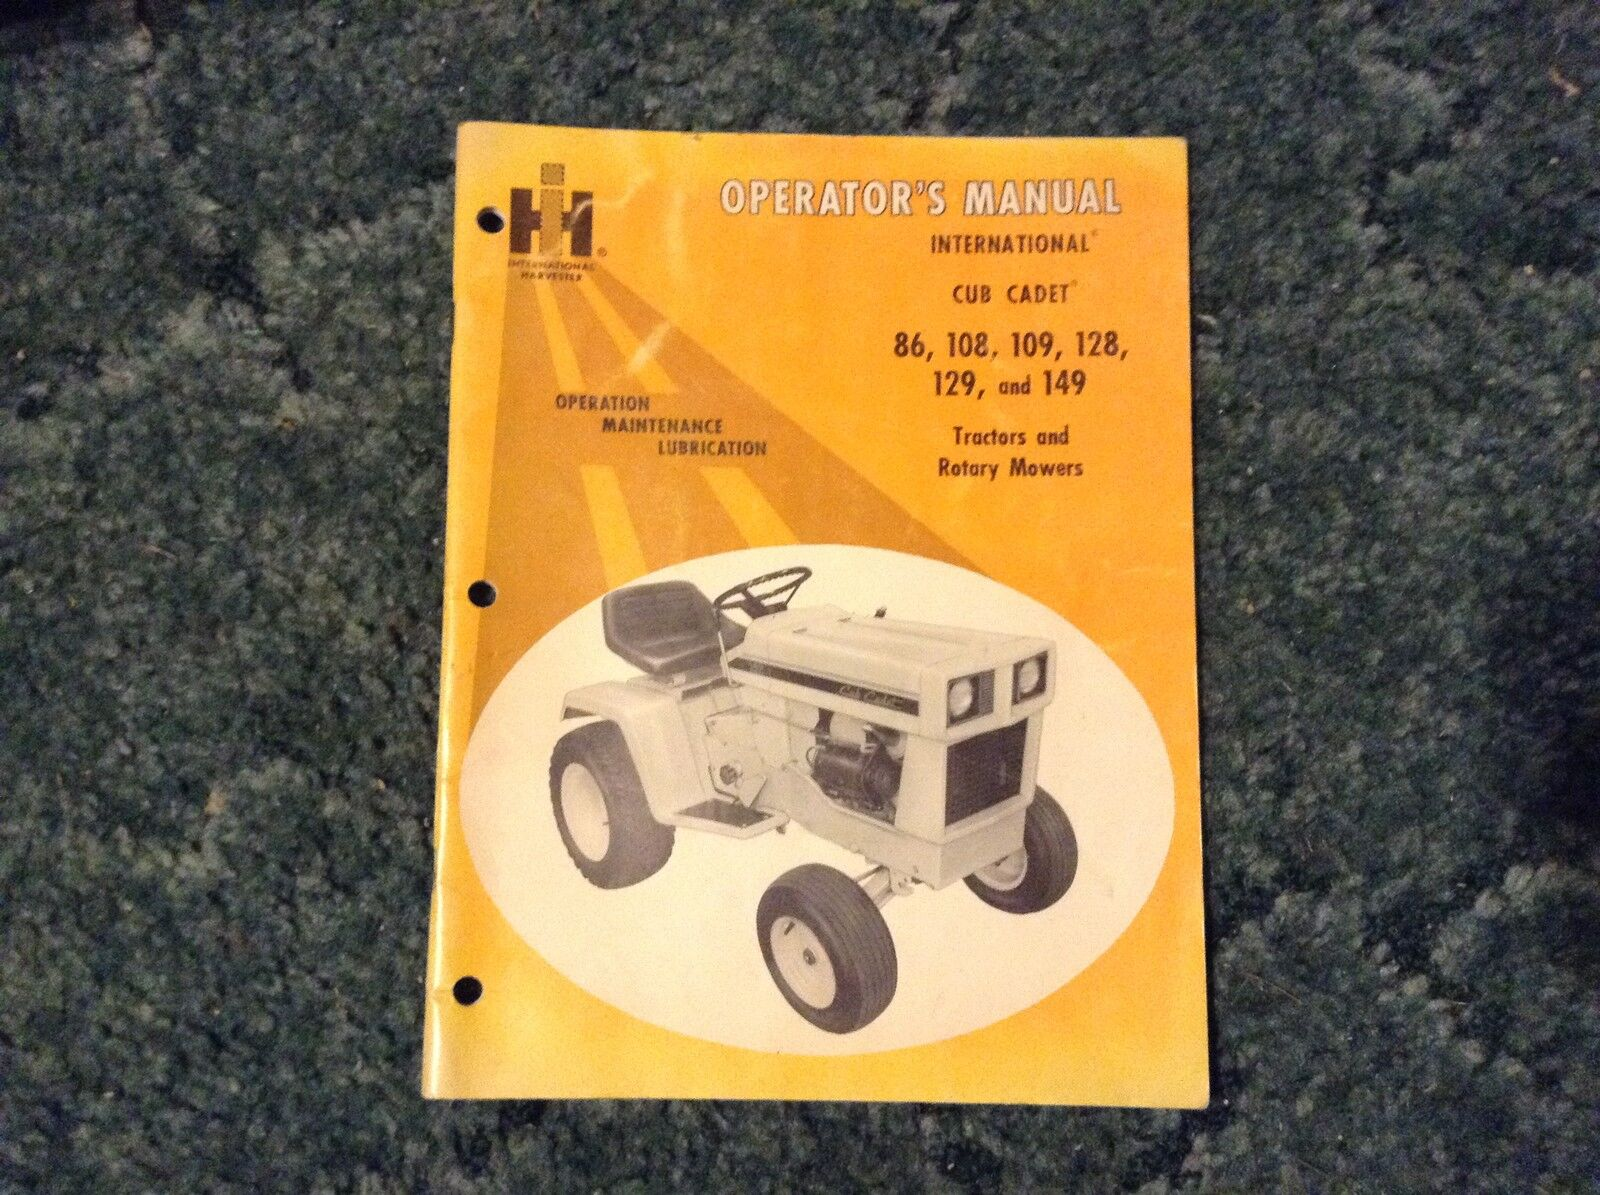 1084284r1 Is A Operators Manual For Cub Cadet 86 108 109 129 128 Wiring Diagram Mowers Ebay